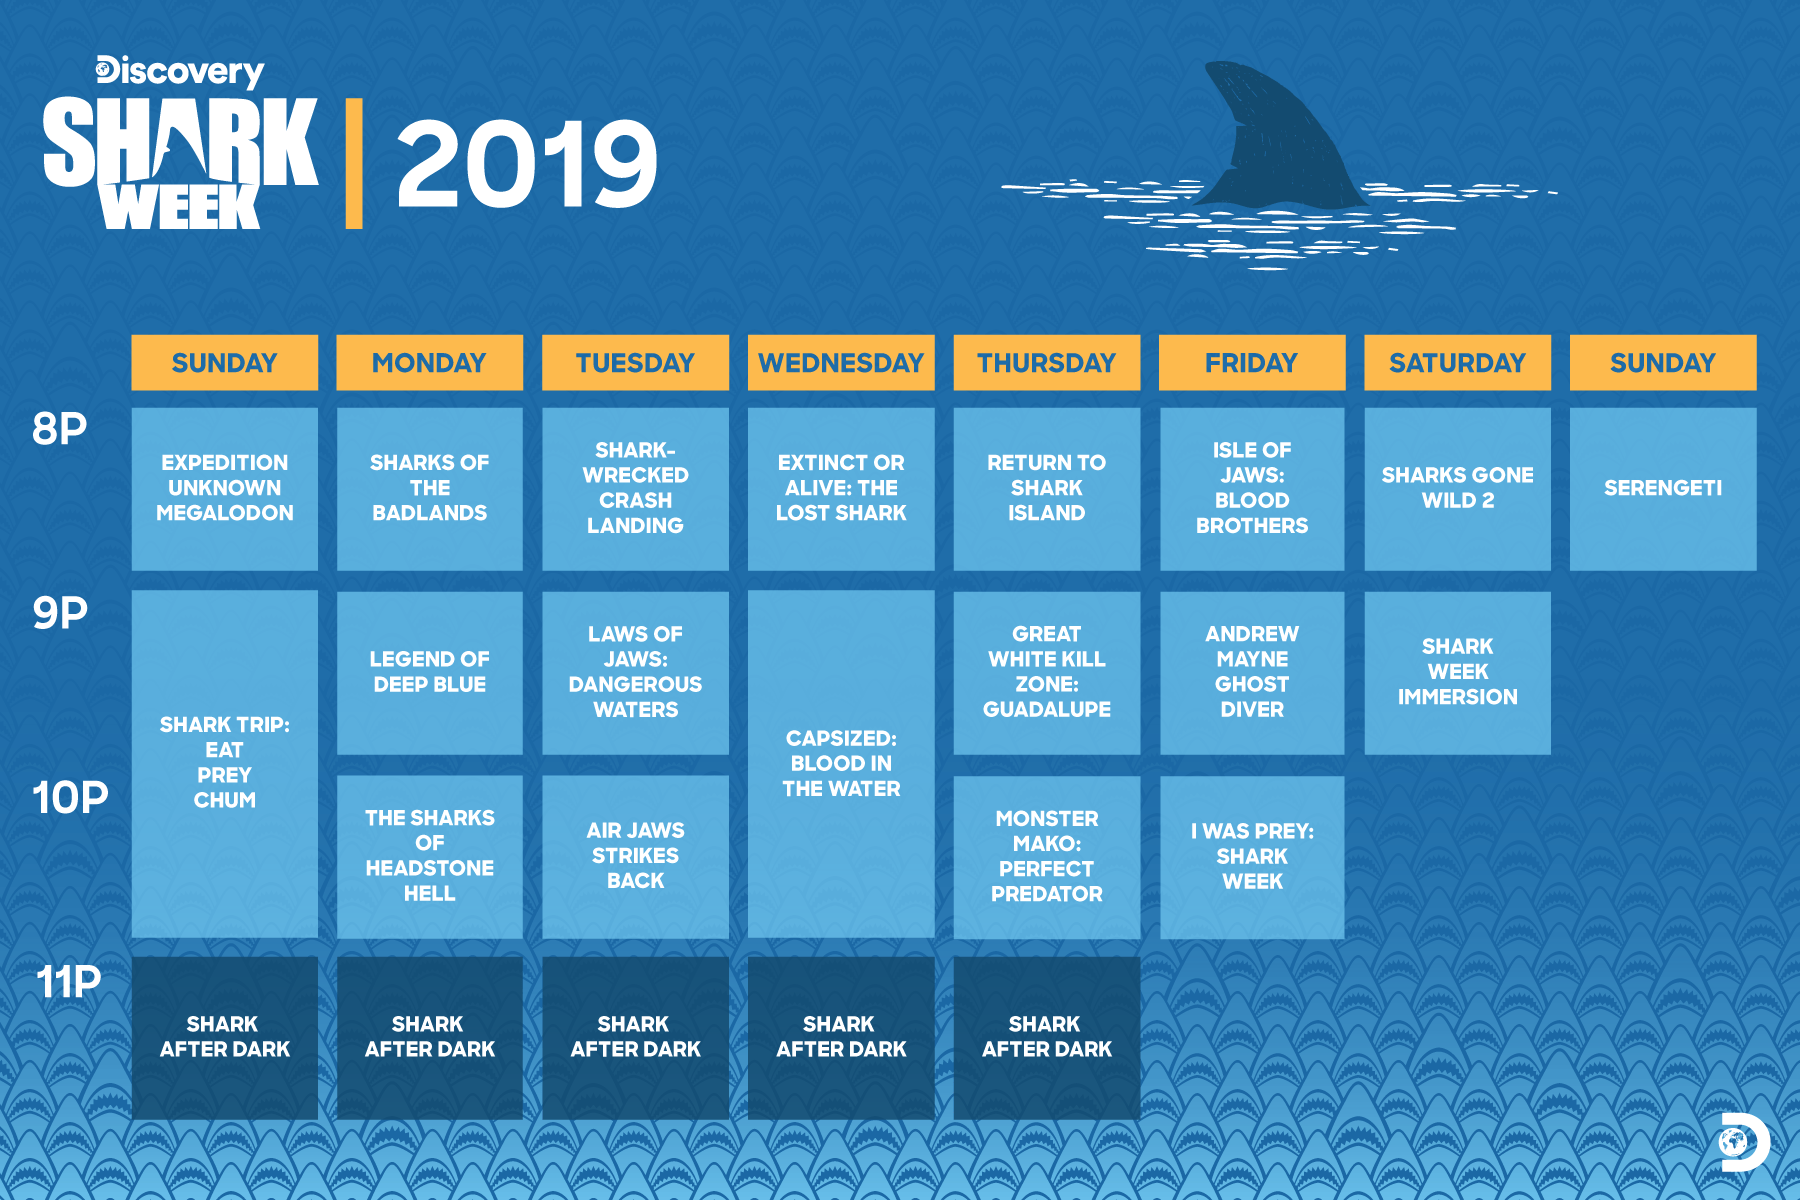 Shark-week-2019-schedule